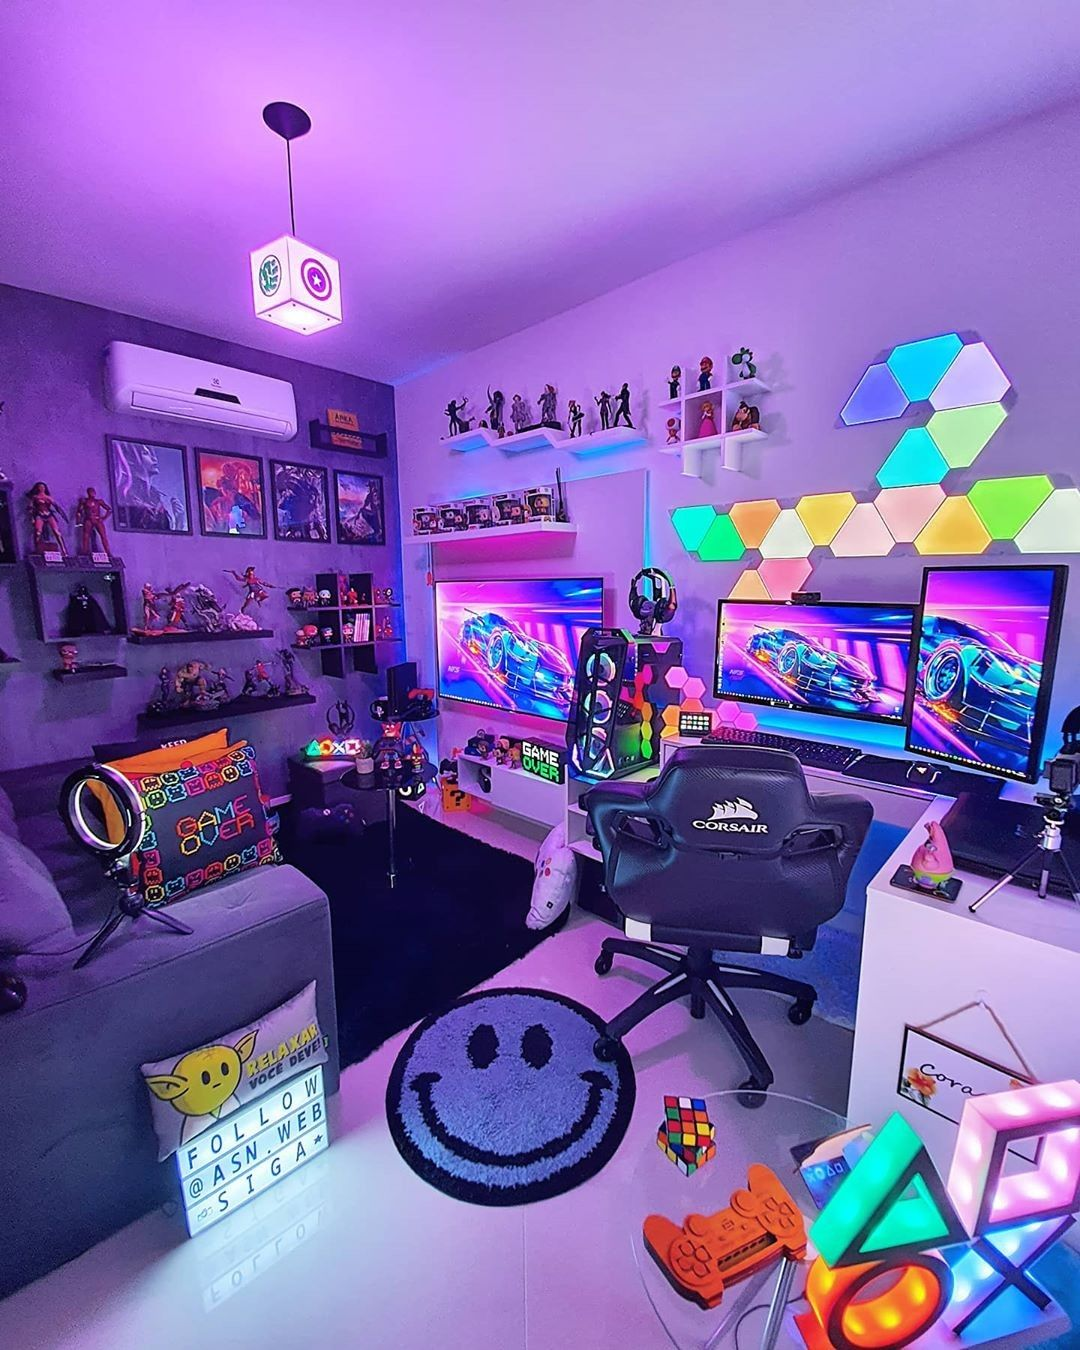 Pin by Freddy Fazbear on gaming setup in 20  Video game room